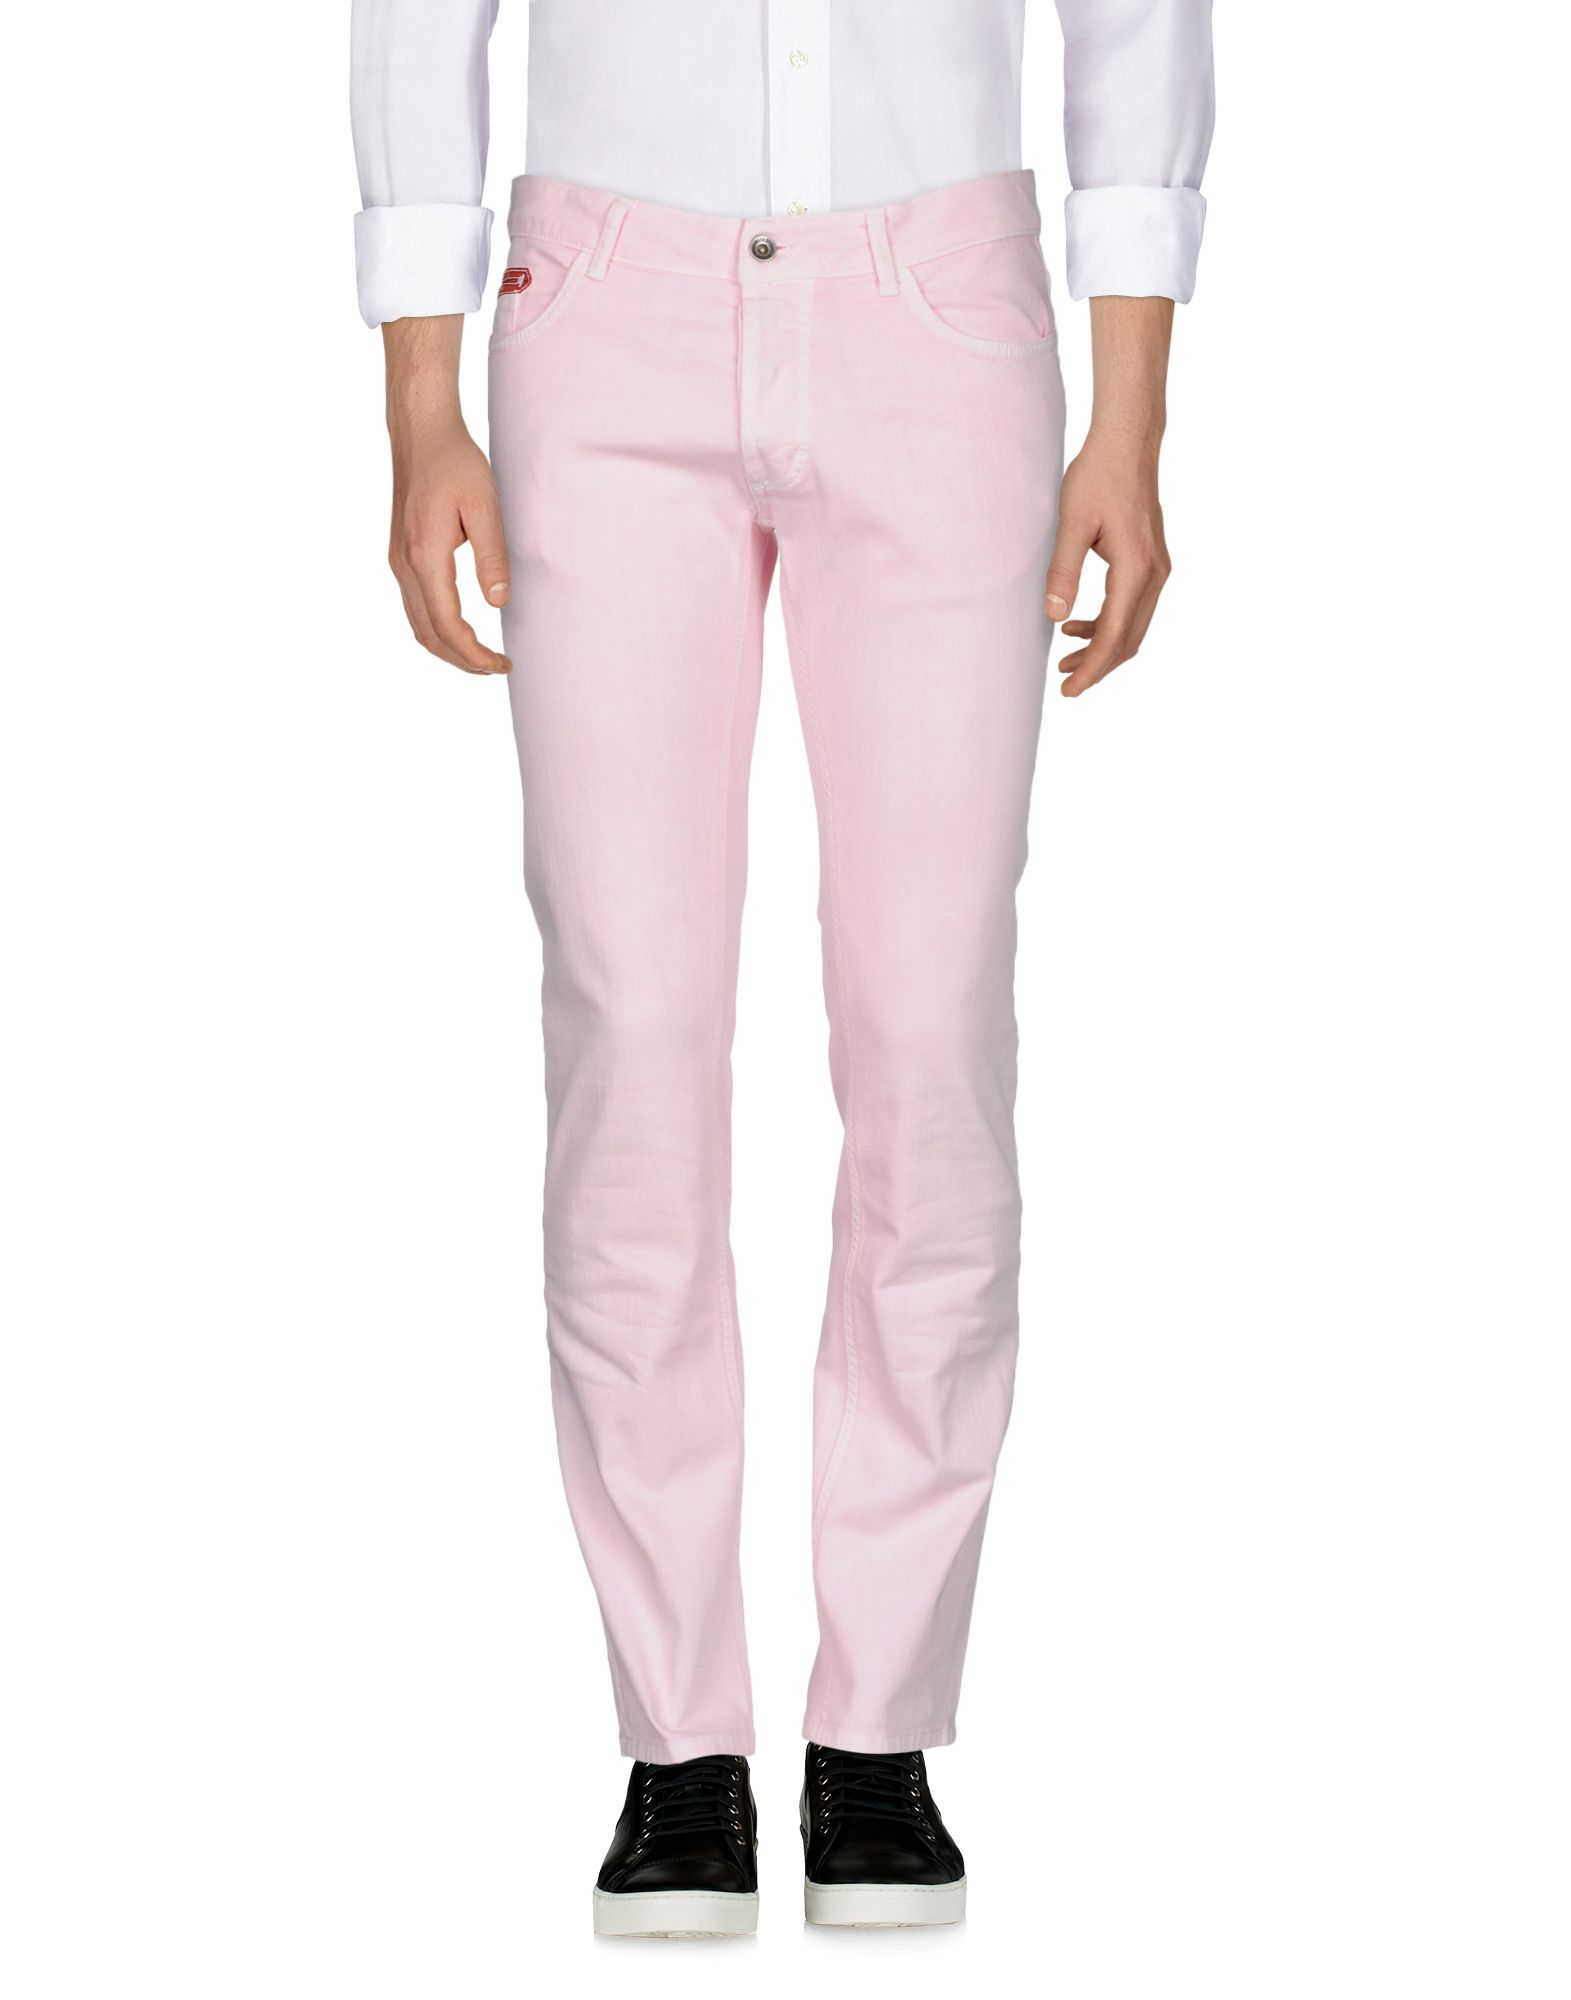 UNLIMITED Denim Pants in Pink